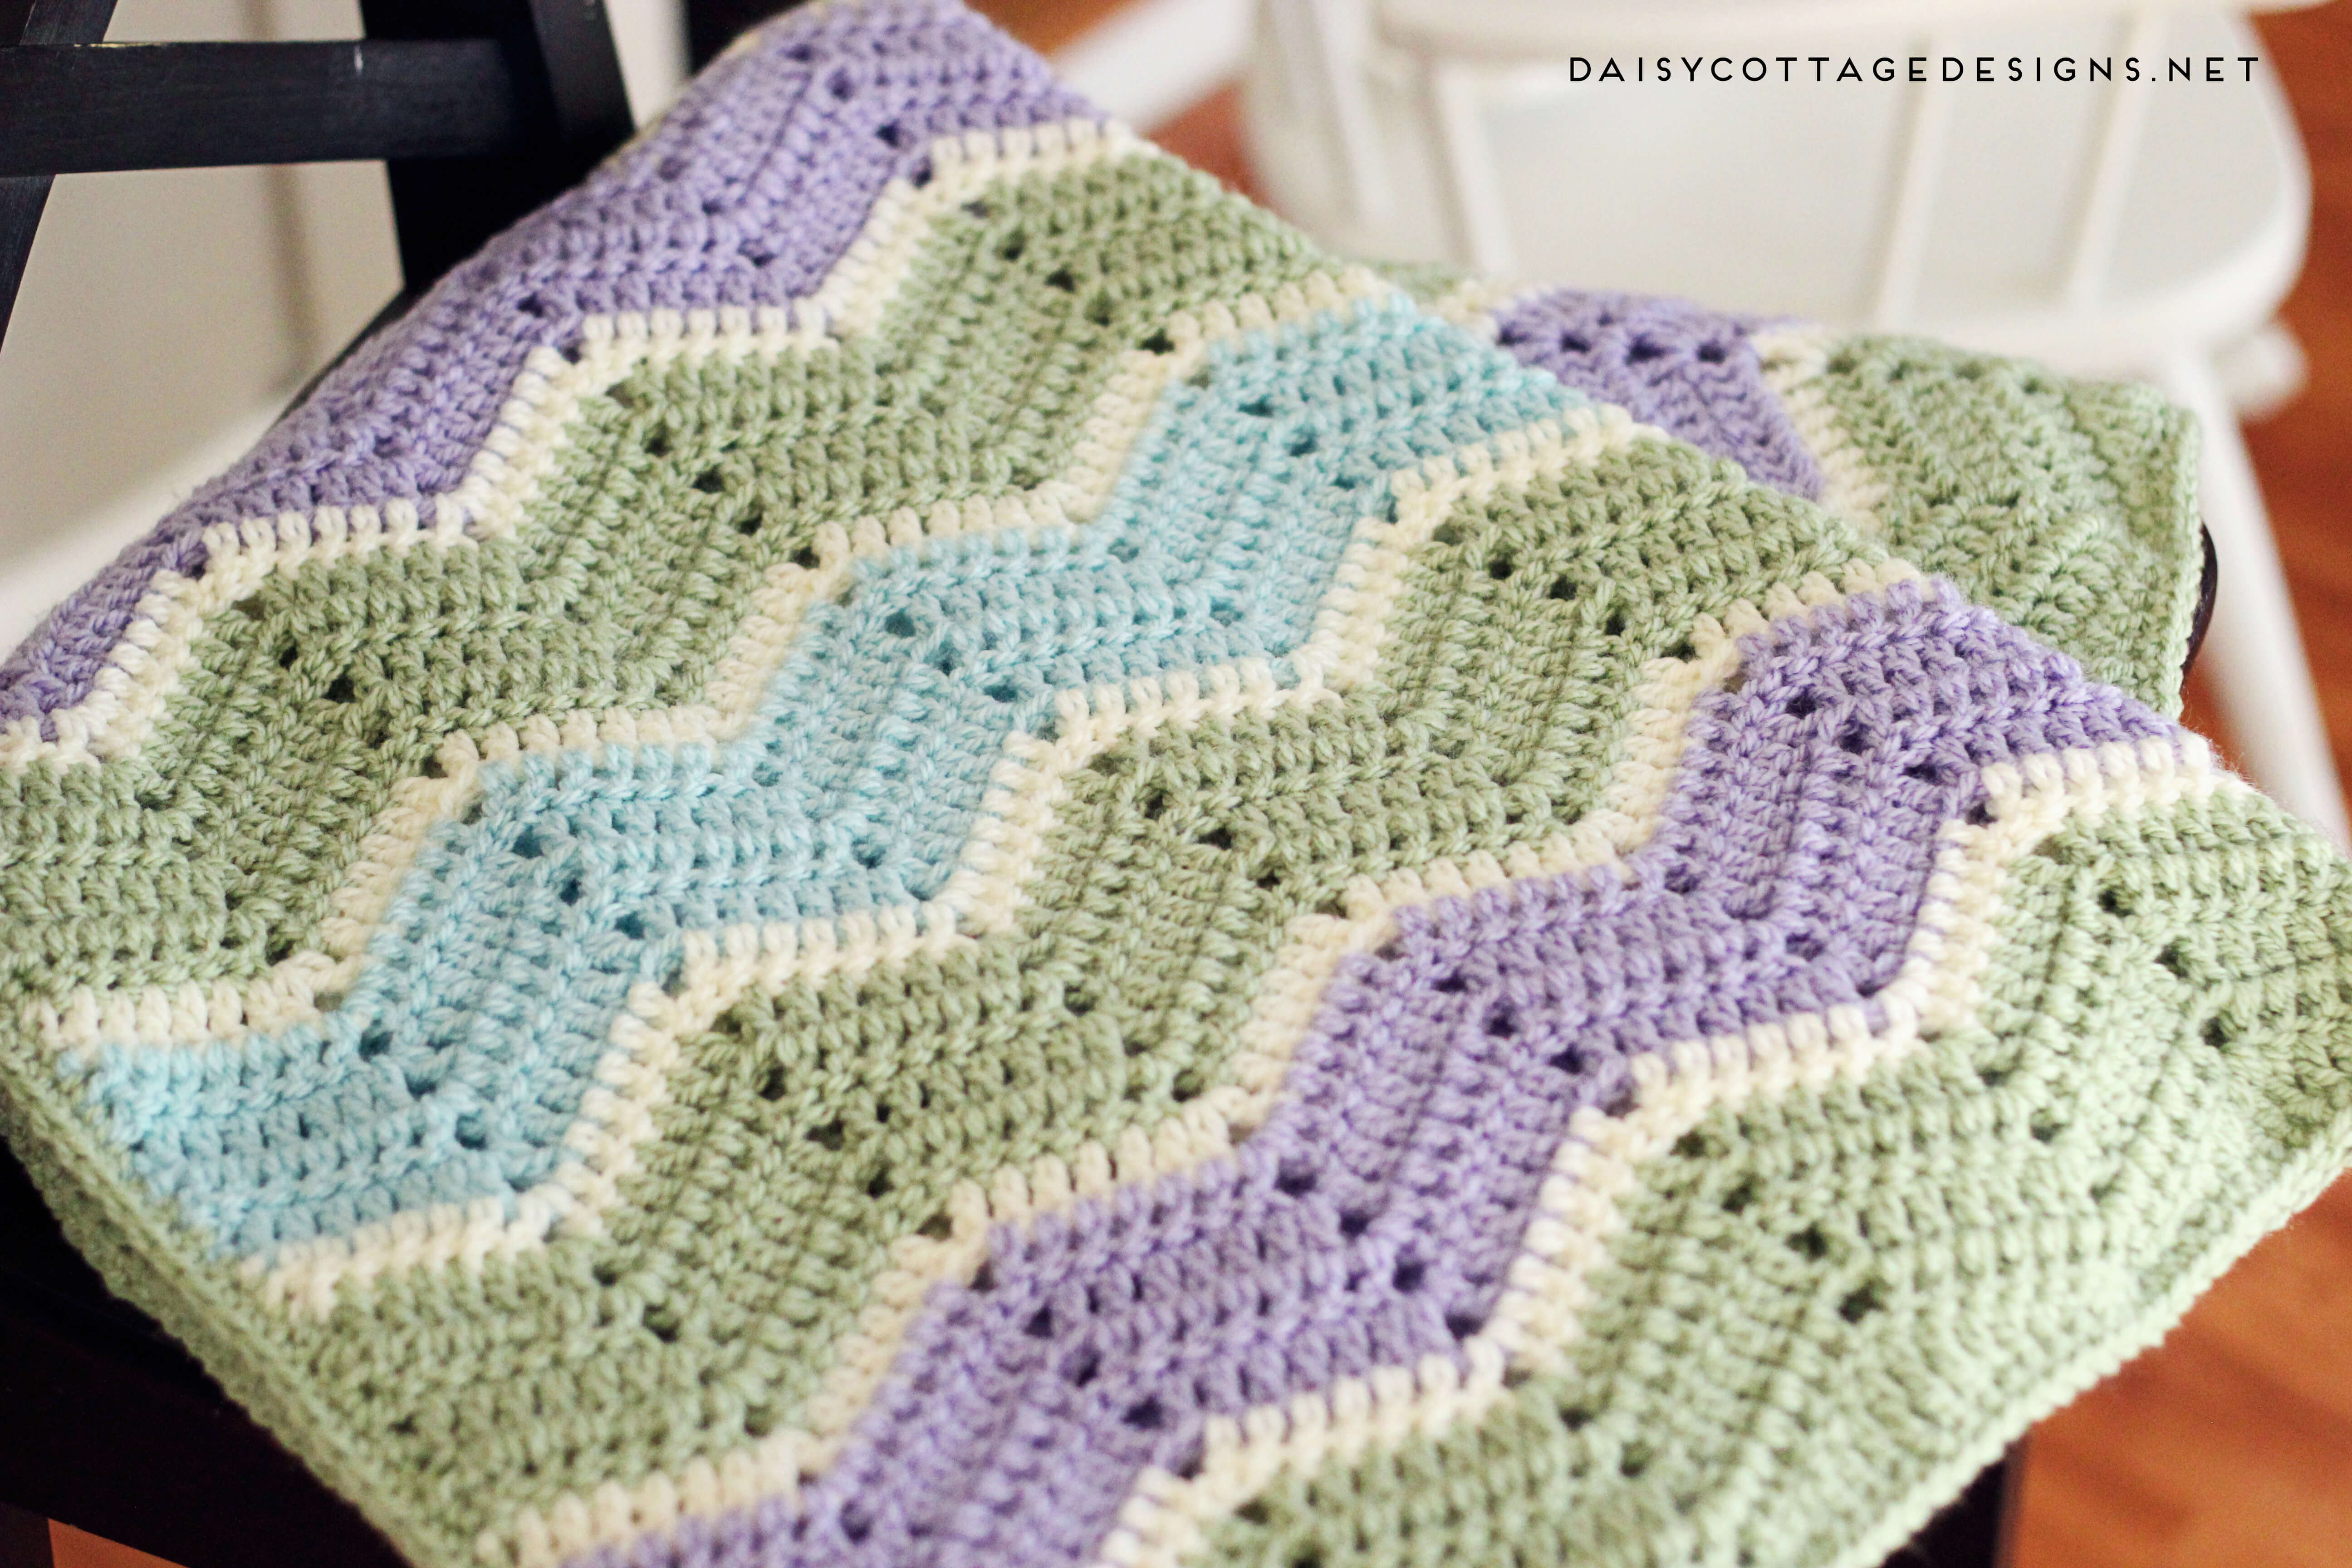 Free Crochet Baby Afghan Patterns Elegant Ripple Blanket Crochet Pattern Daisy Cottage Designs Of Superb 46 Photos Free Crochet Baby Afghan Patterns